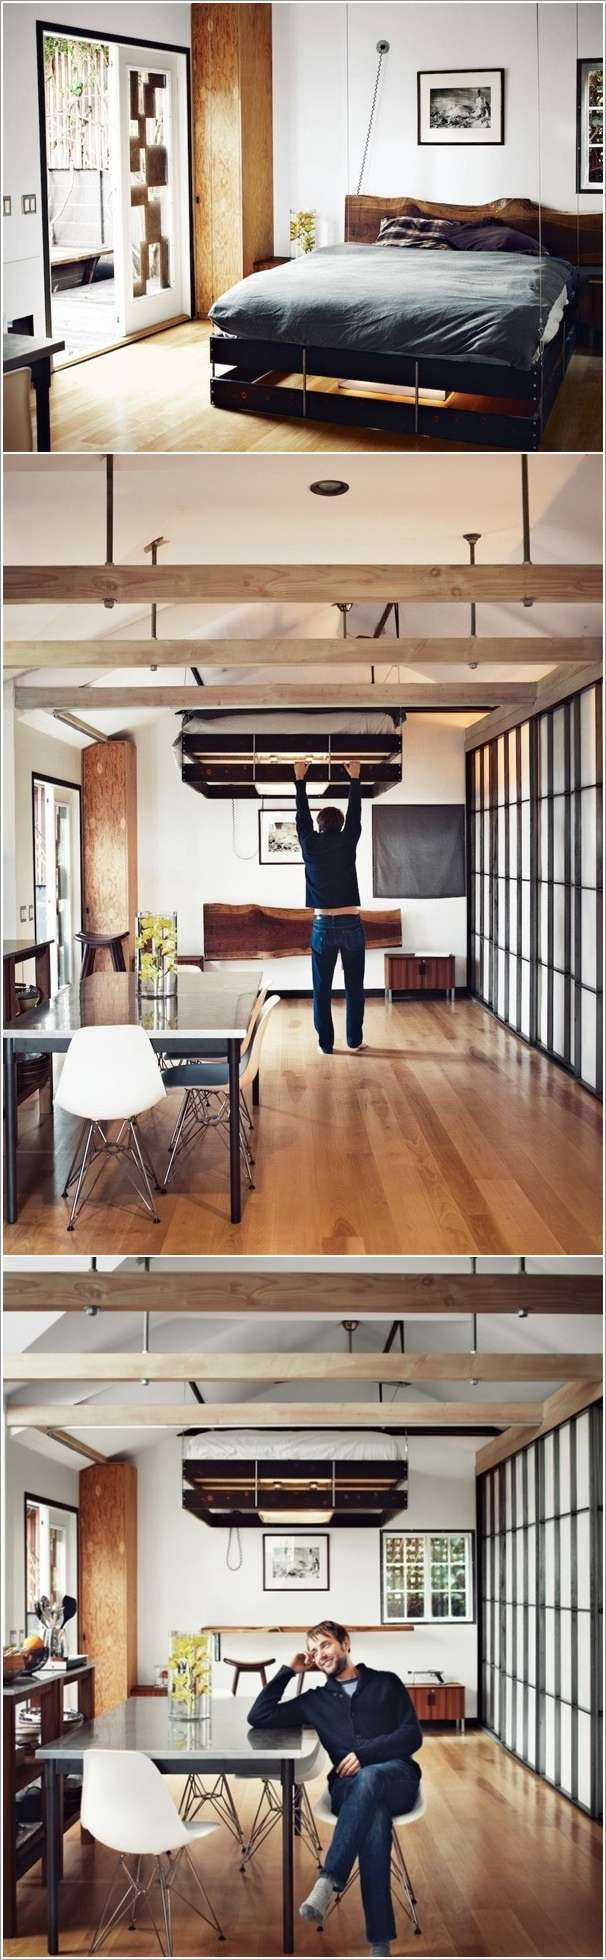 Retractable Bed That Lets You Use the Space It Occupies During the Day   10 Ingenious Ideas for Small Space Interiors 212